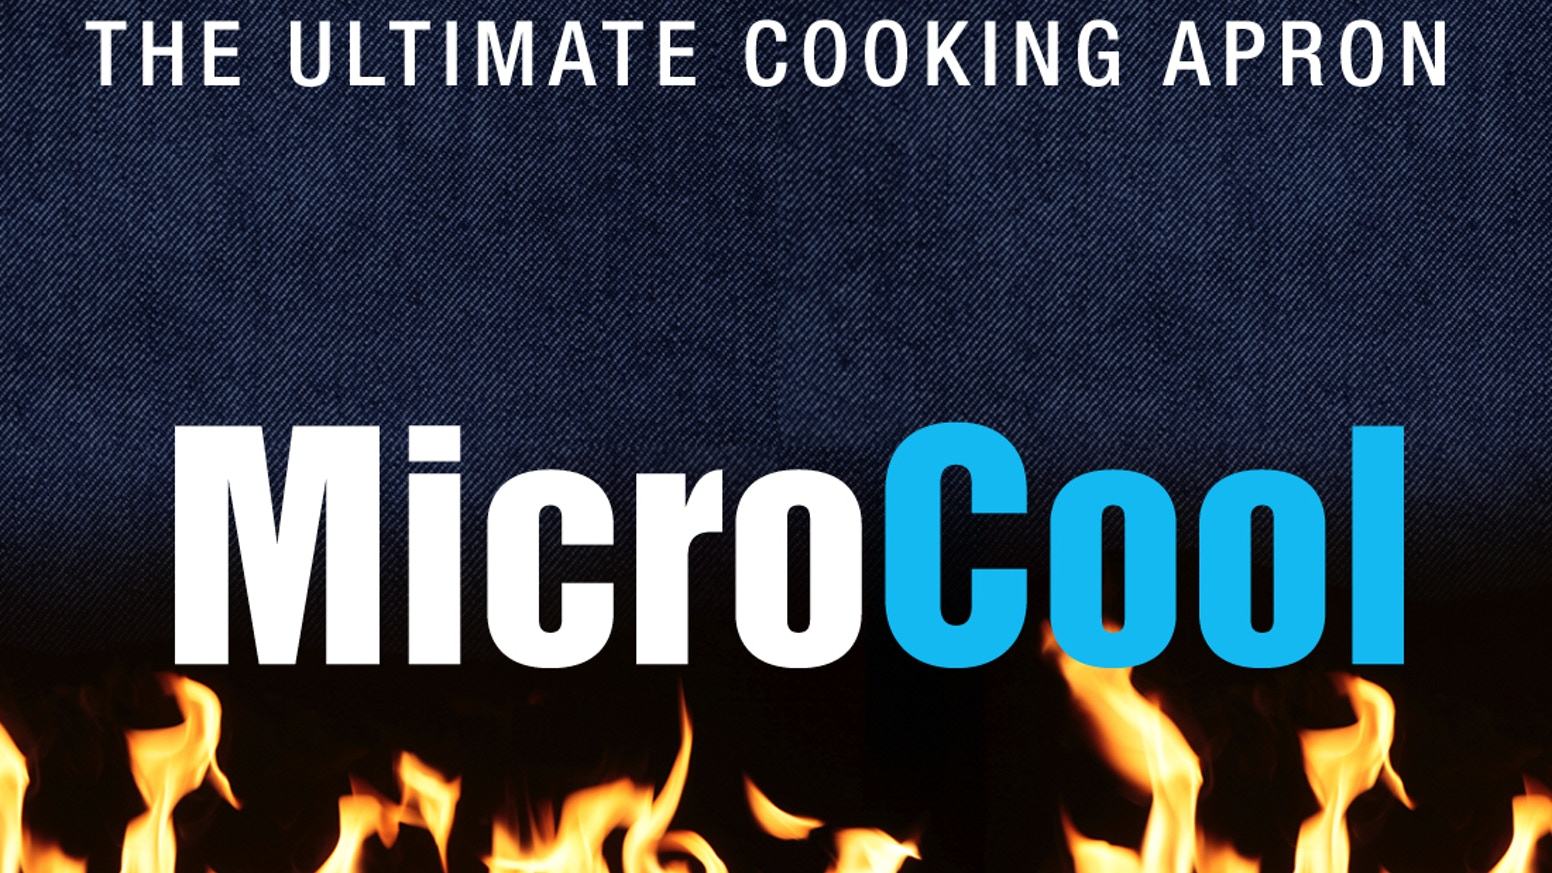 53d2d1ade1c MicroCool   The Ultimate Cooking Apron with micro-thermal technology to  repel hot oil and boiling liquids.